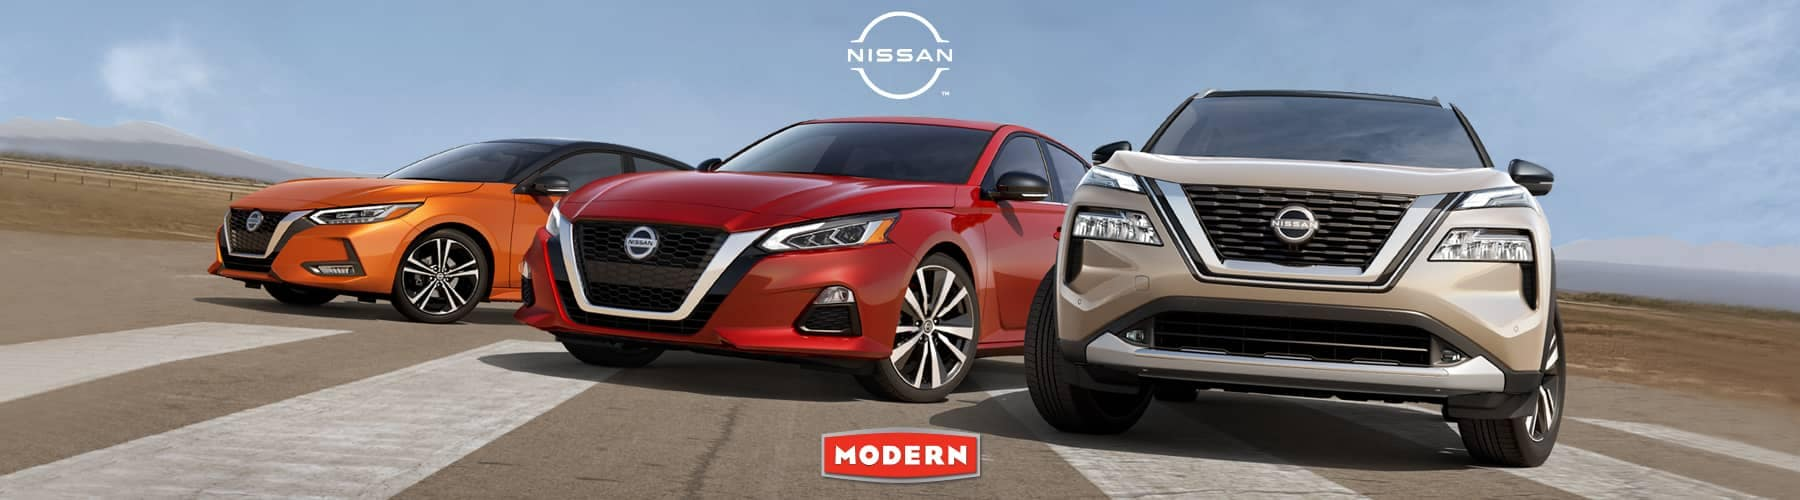 Nissan vehicle lineup outdoors